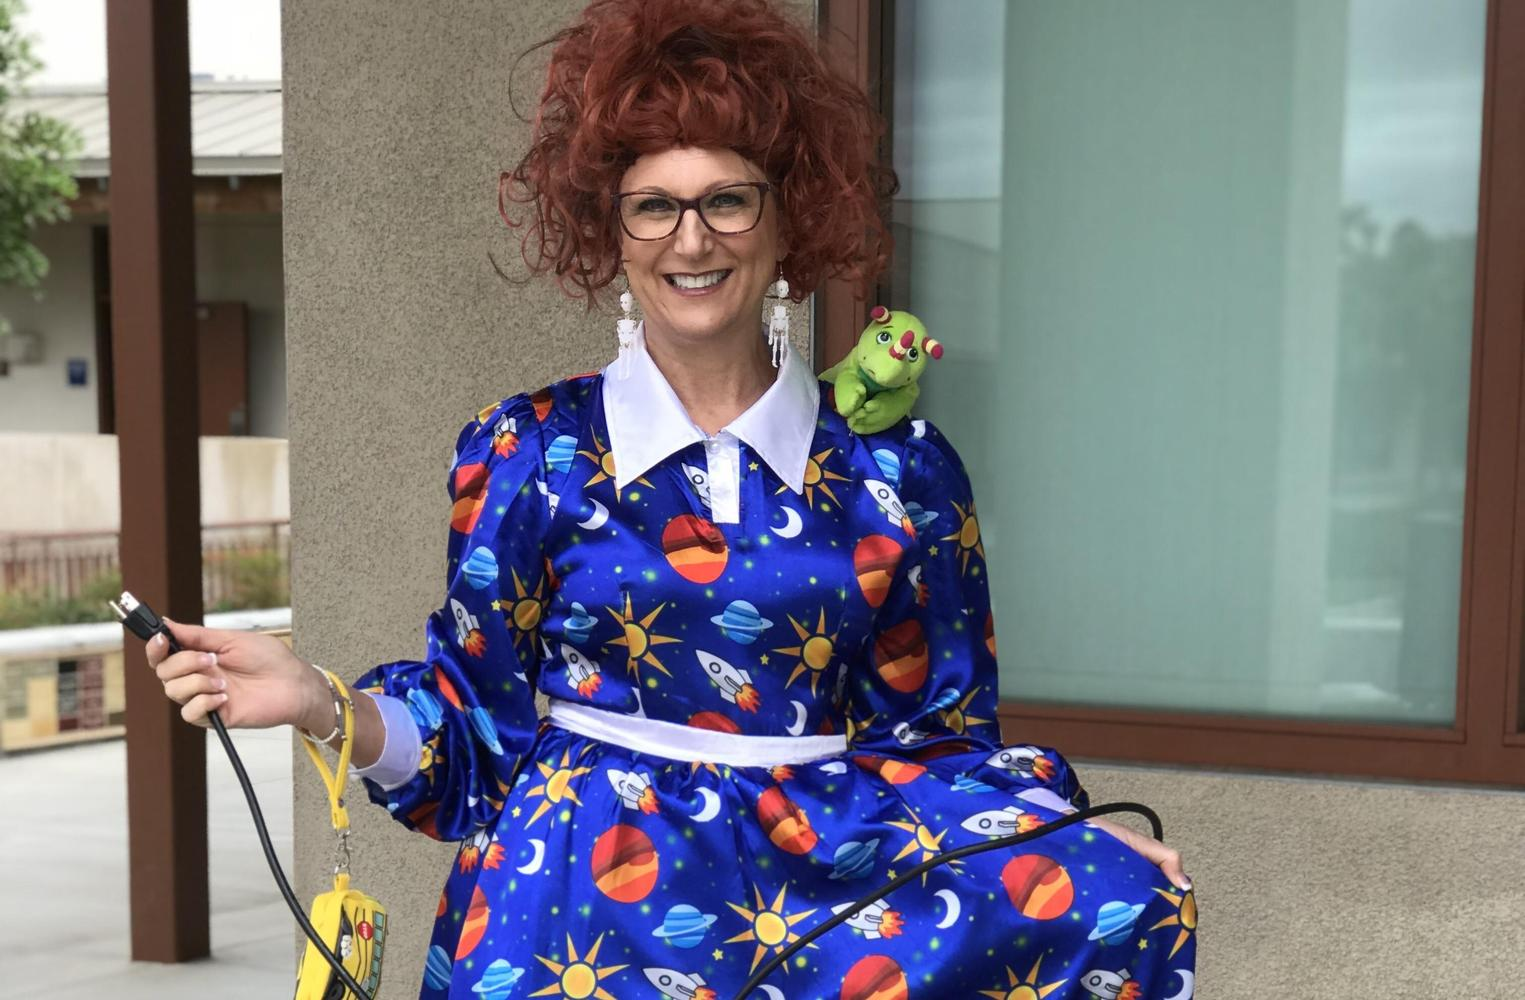 Mrs. Beeuwsaert as Mrs. Frizzle for Halloween